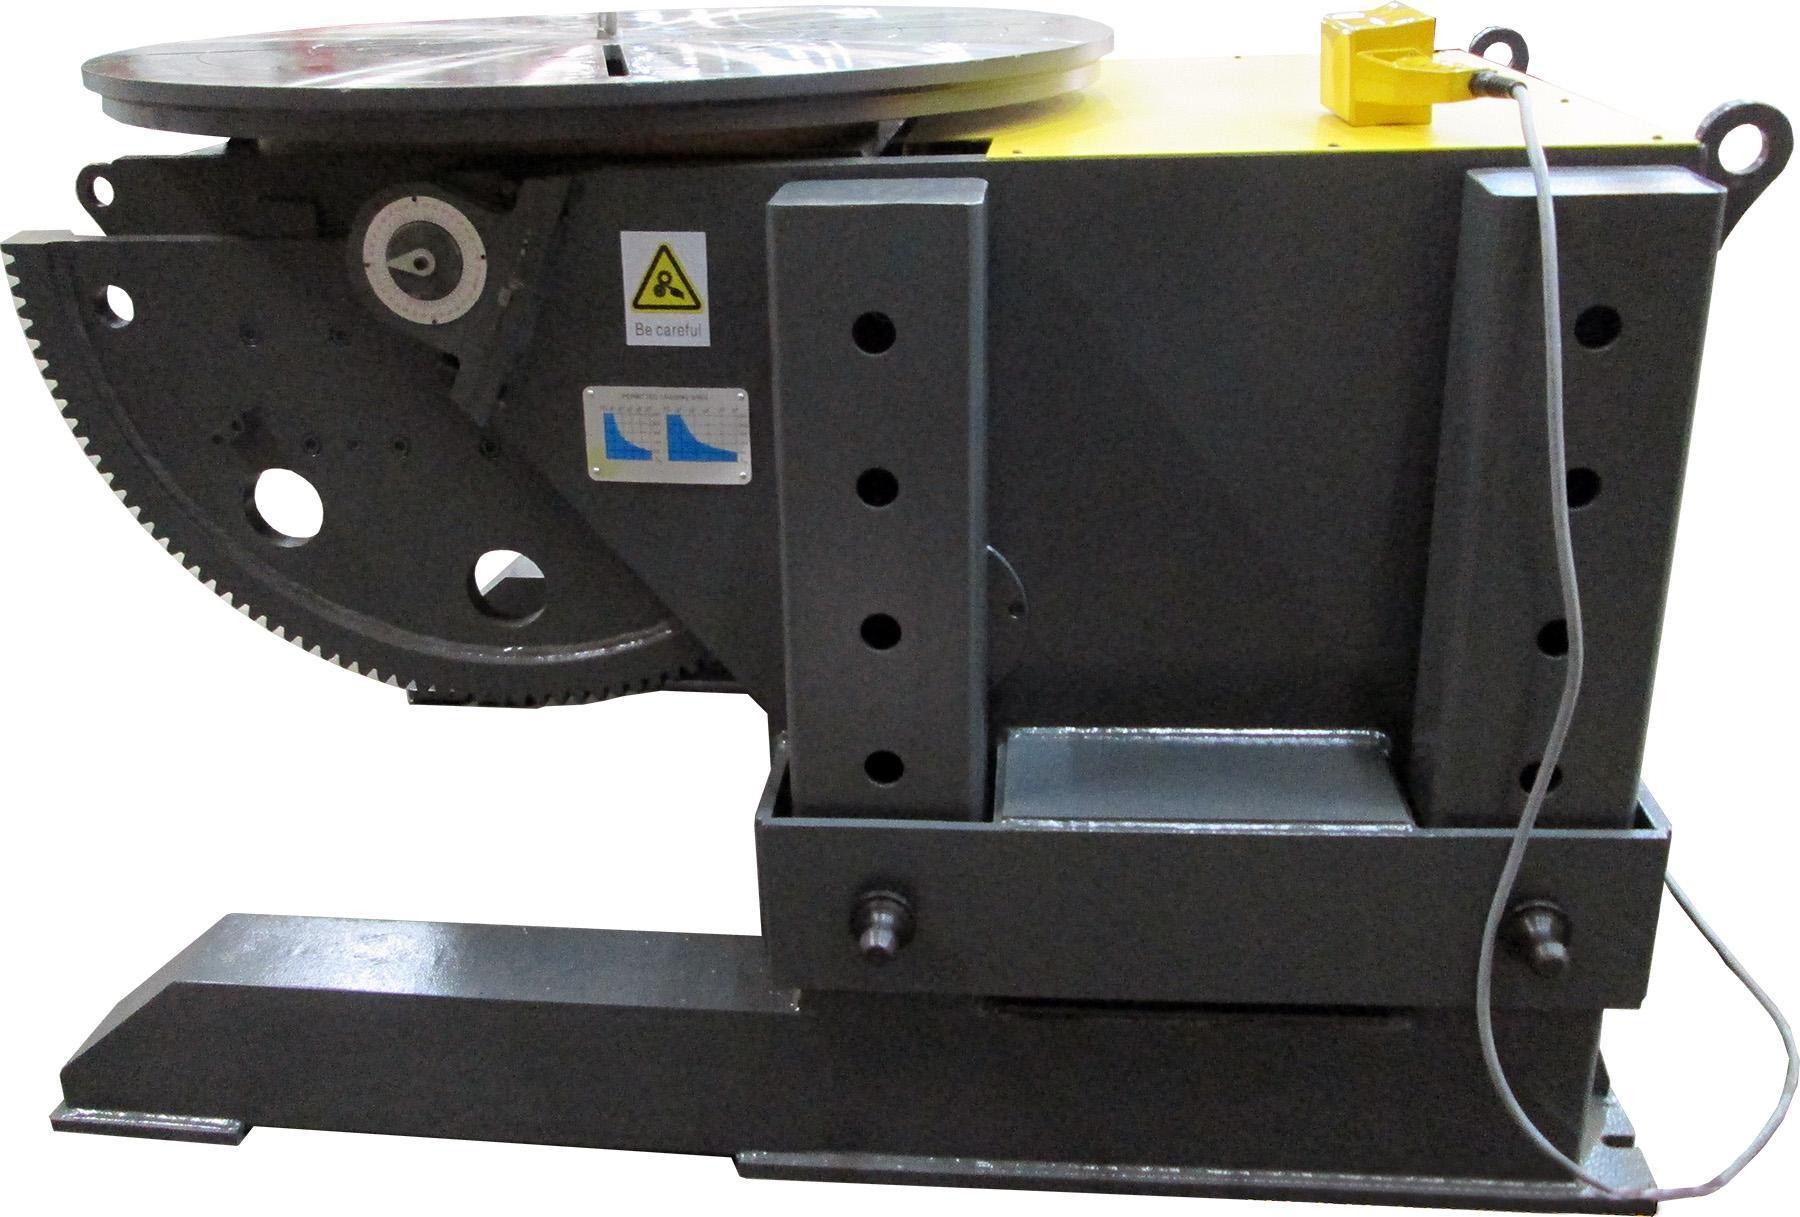 NEW, 3 TON STEADY-WELD MODEL P3-A ADJUSTABLE HEIGHT WELDING POSITIONER